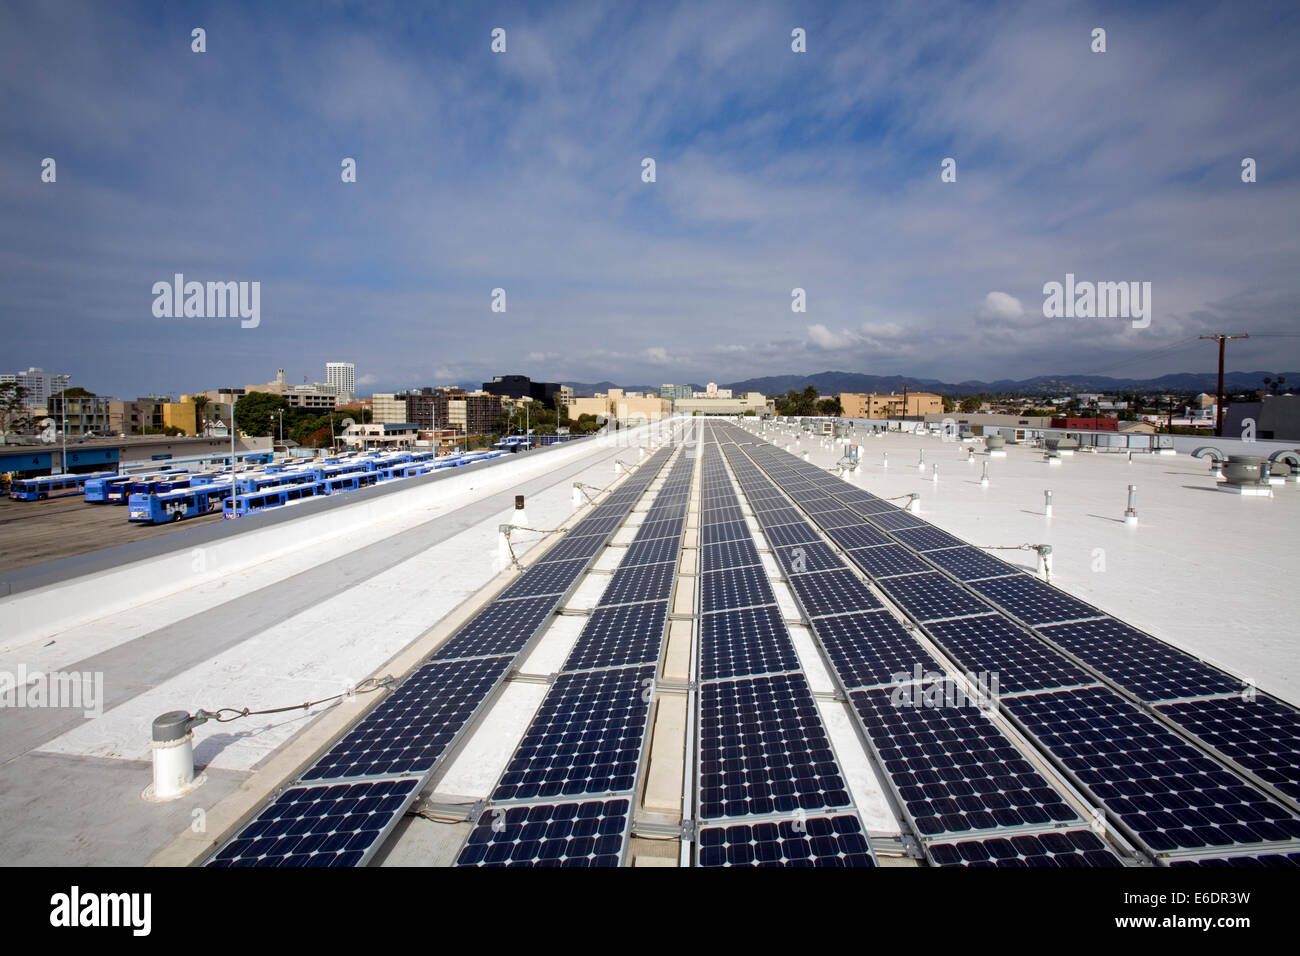 82 Kilowatt Solar Array on roof of Big Blue Bus Terminal, Installation by Martifer Solar USA, Santa Monica, California, - Stock Image